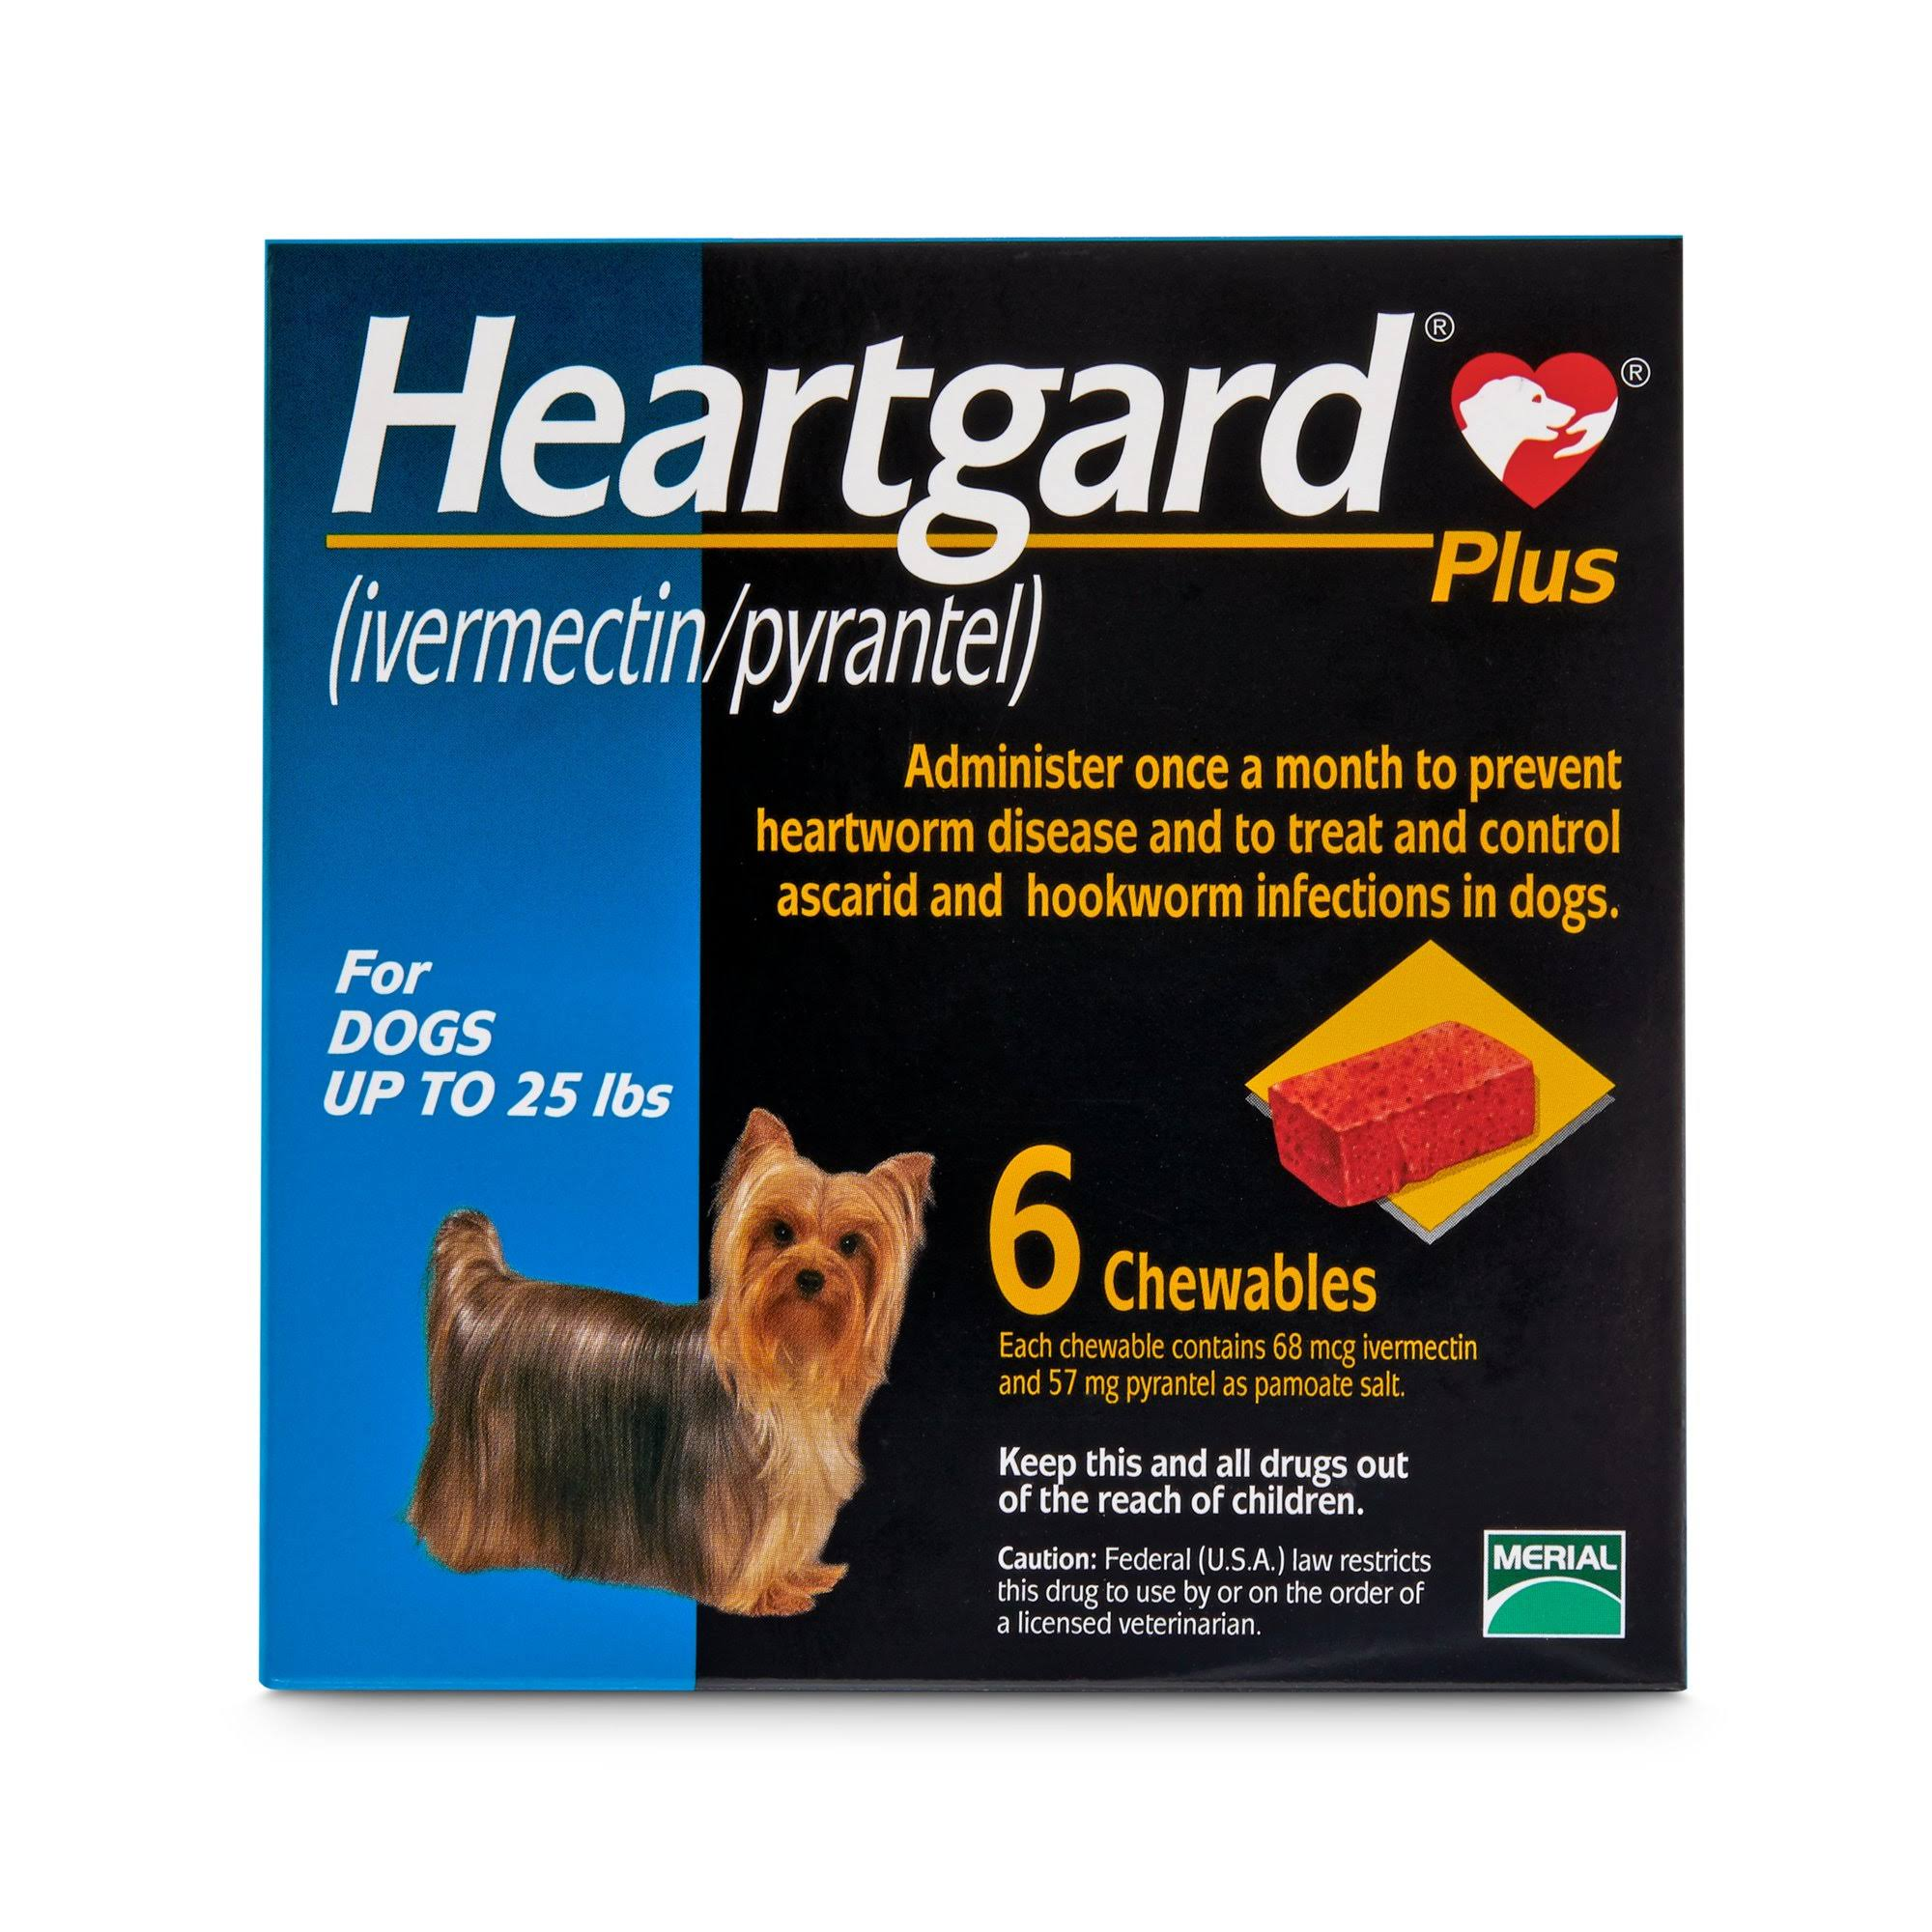 Heartgard Plus Dogs Chewables - Blue, 6ct